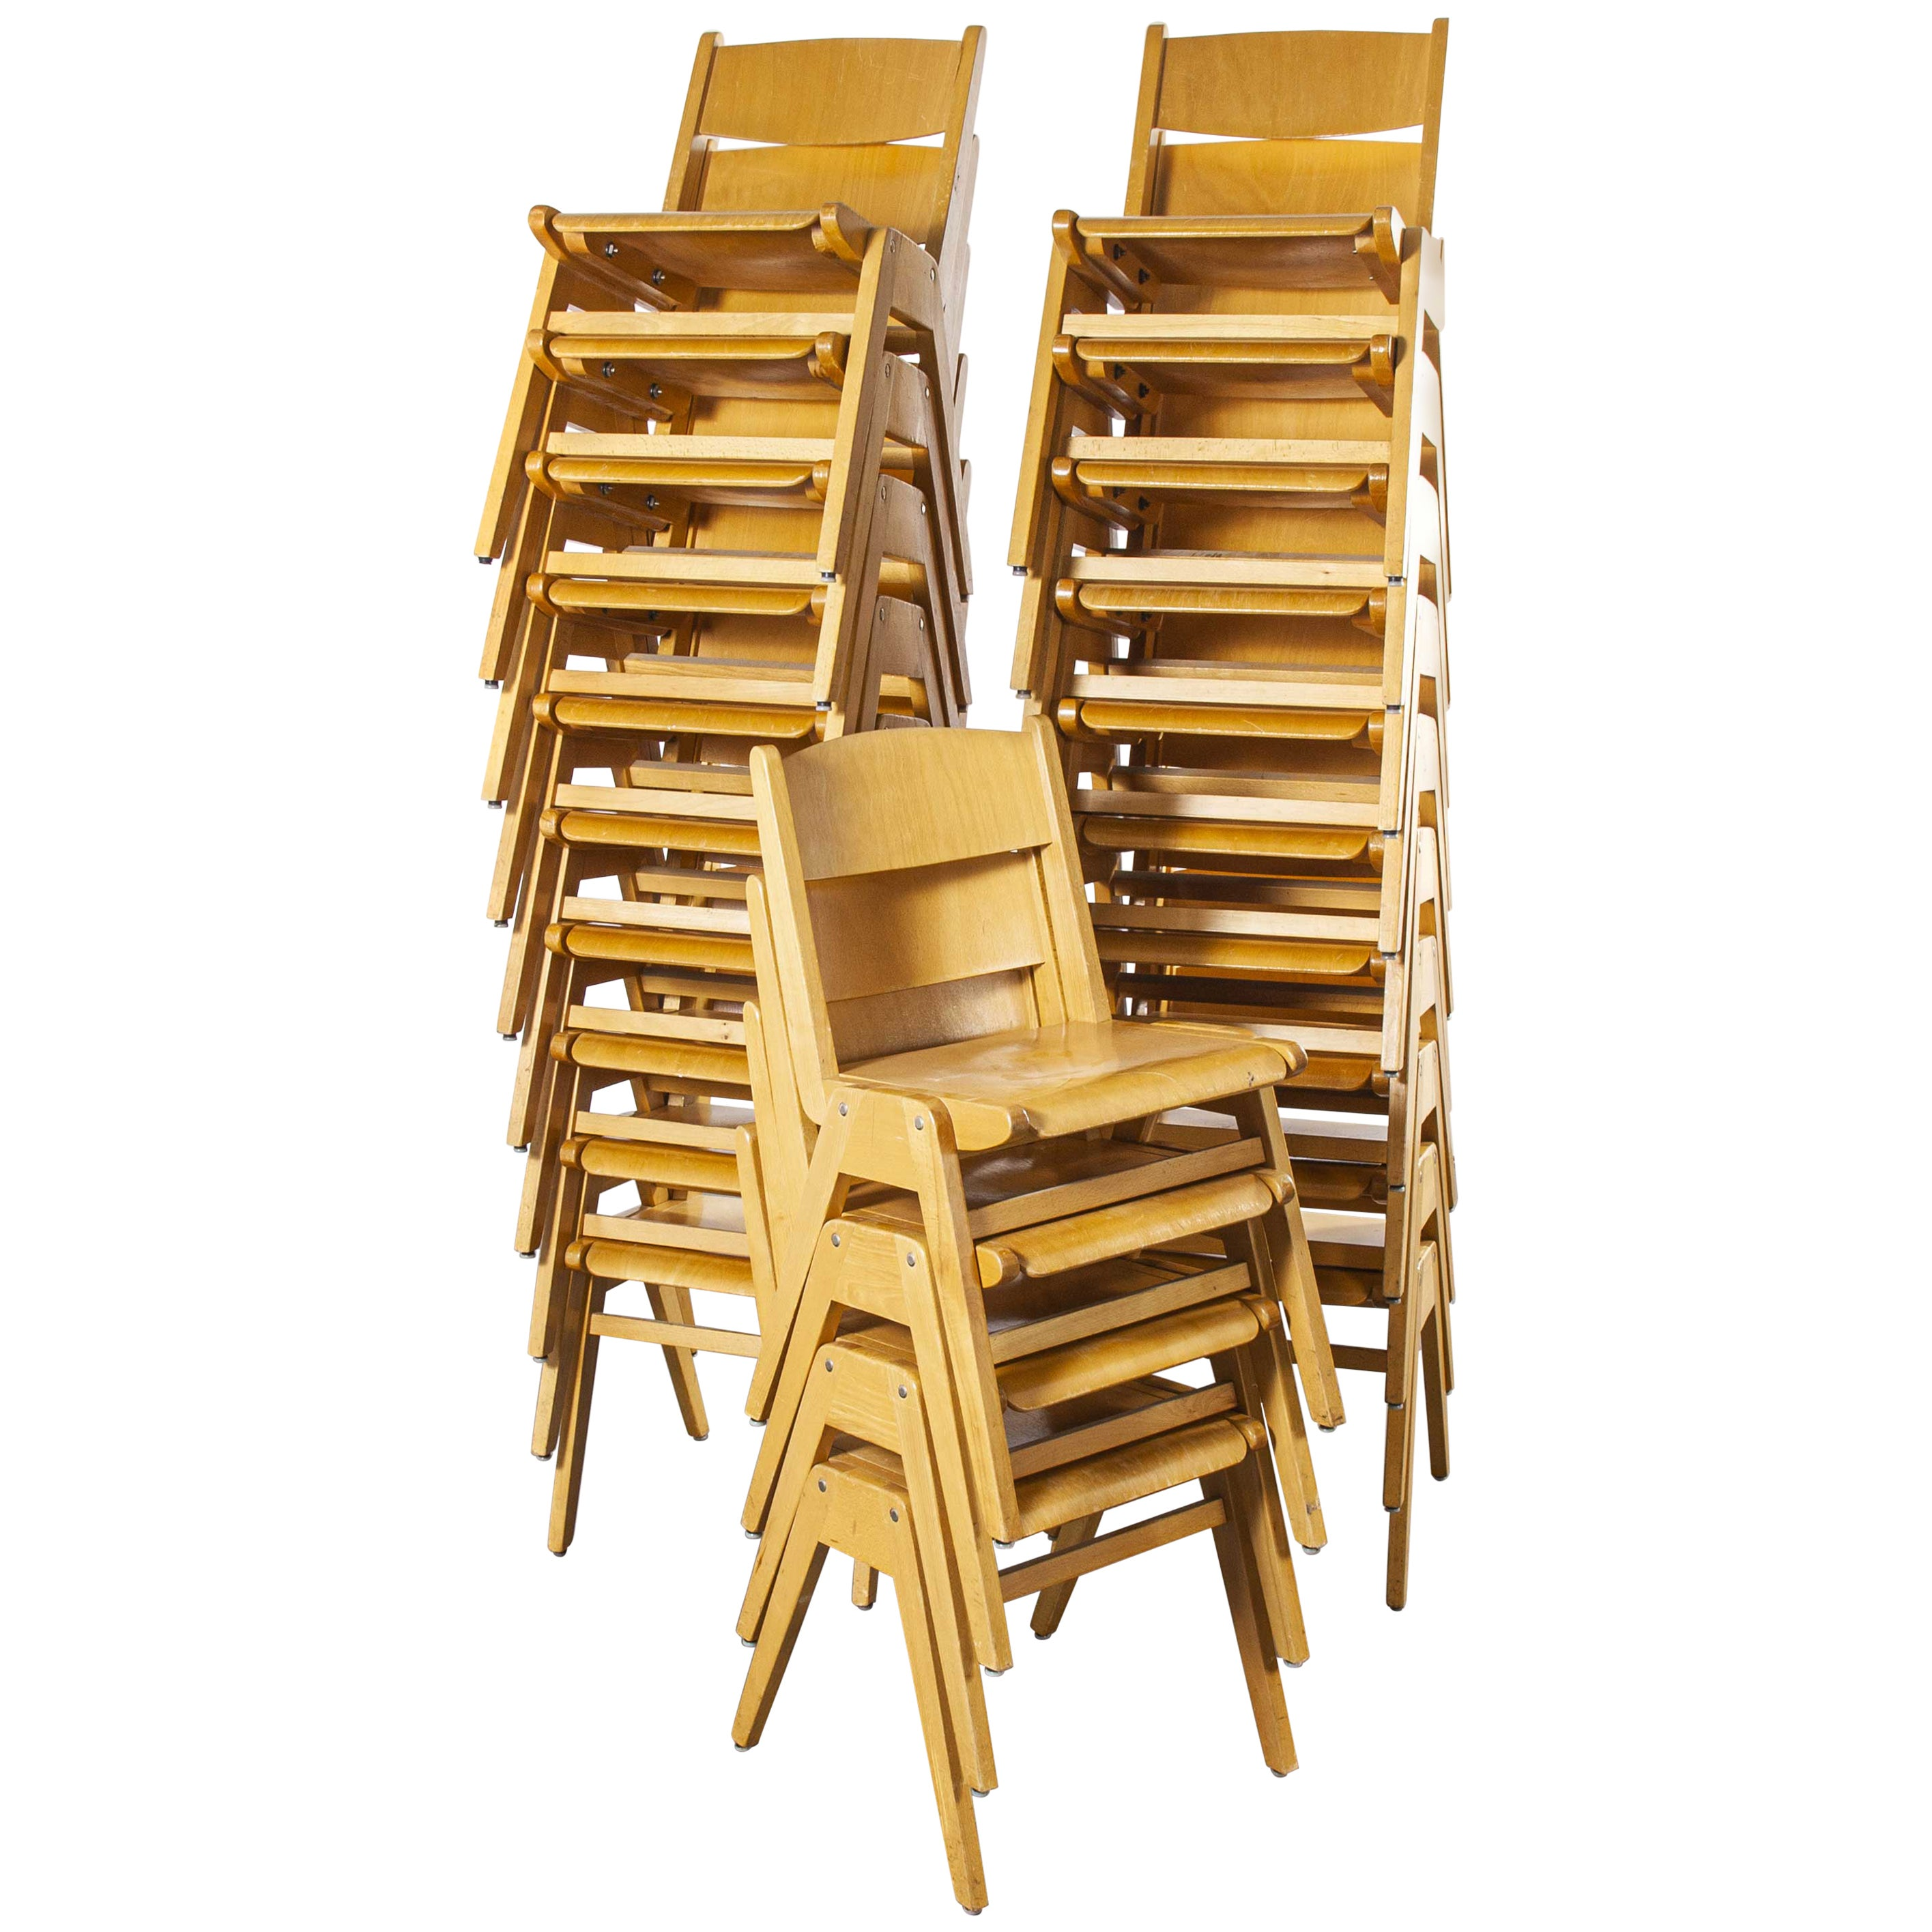 1970s Casala Stacking Dining Chair, Set of Twenty Four